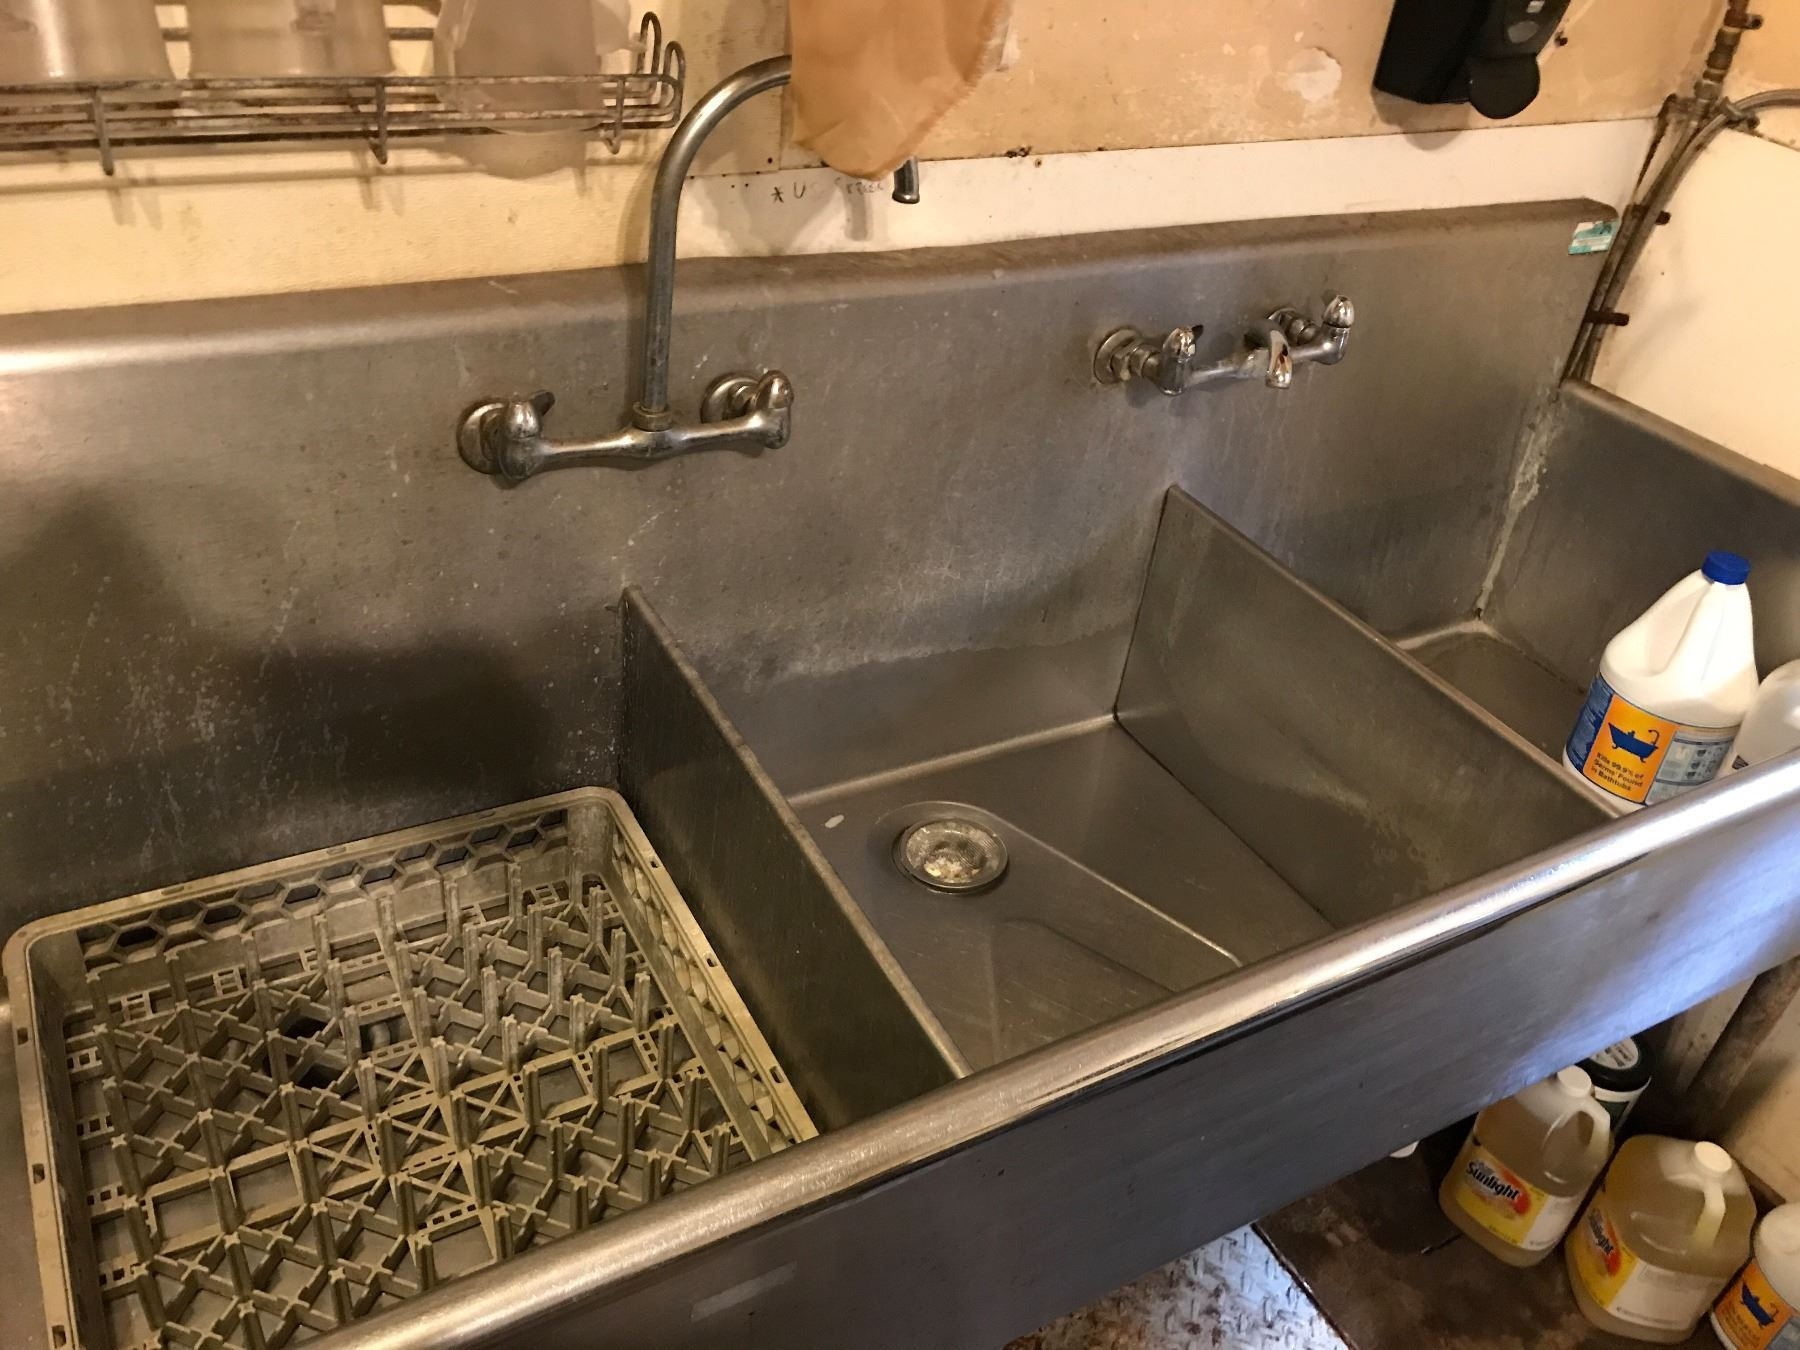 3 compartment sink with faucet fittings